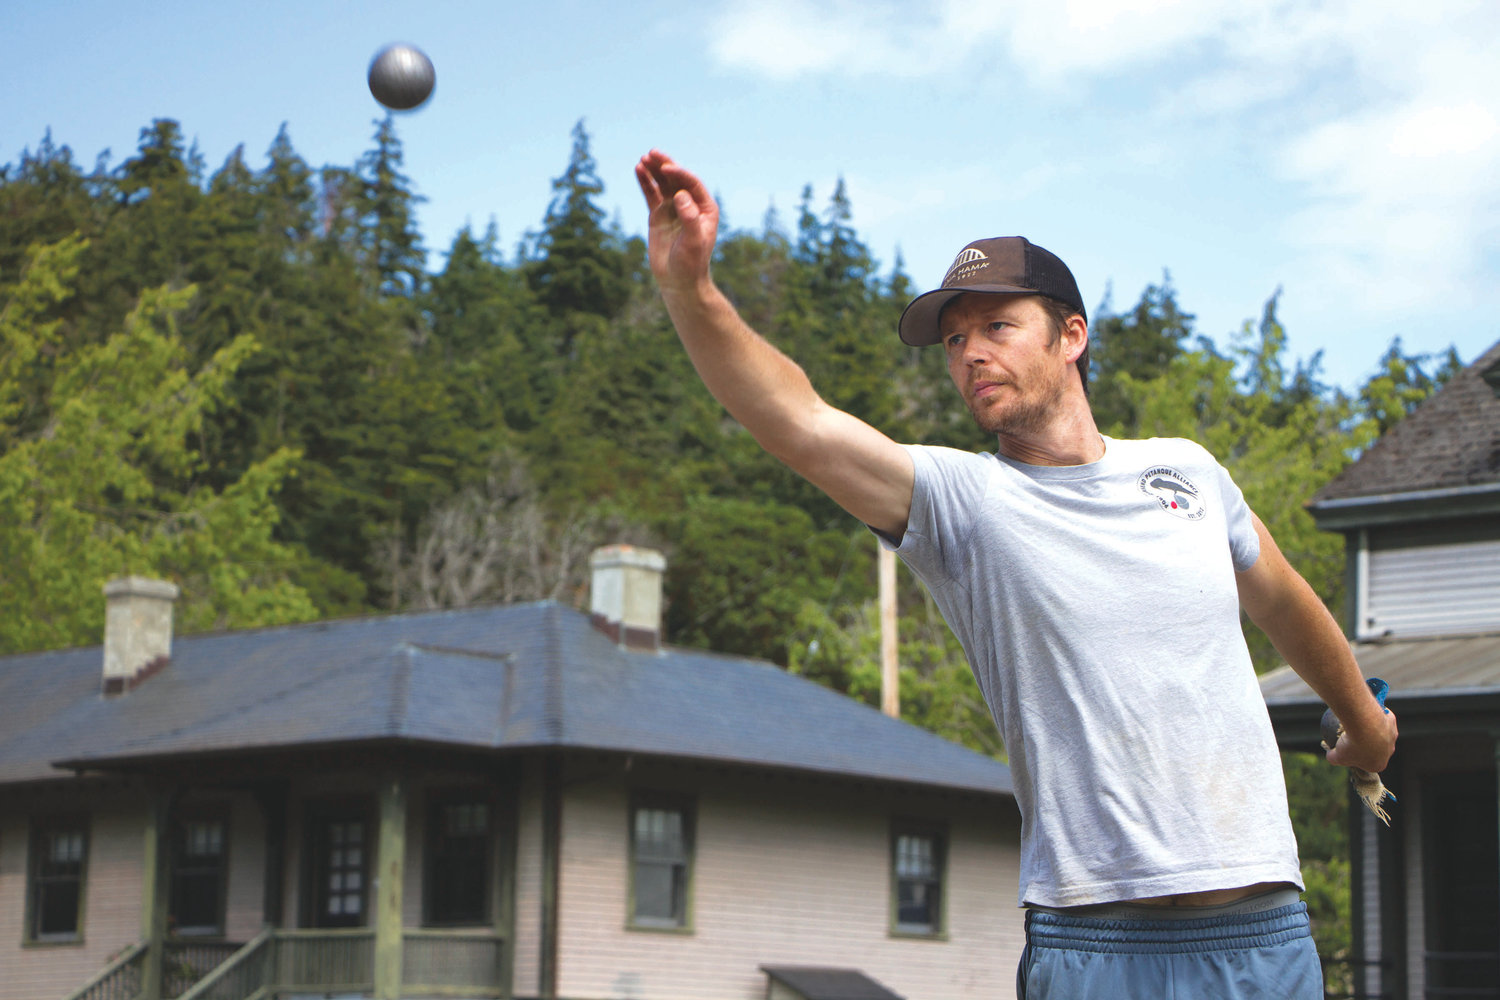 Silas Holm of Port Townsend launches his boule at the Port Townsend Pétanque Alliance's home court at Fort Worden State Park, aiming to get it as close to the target ball as possible.